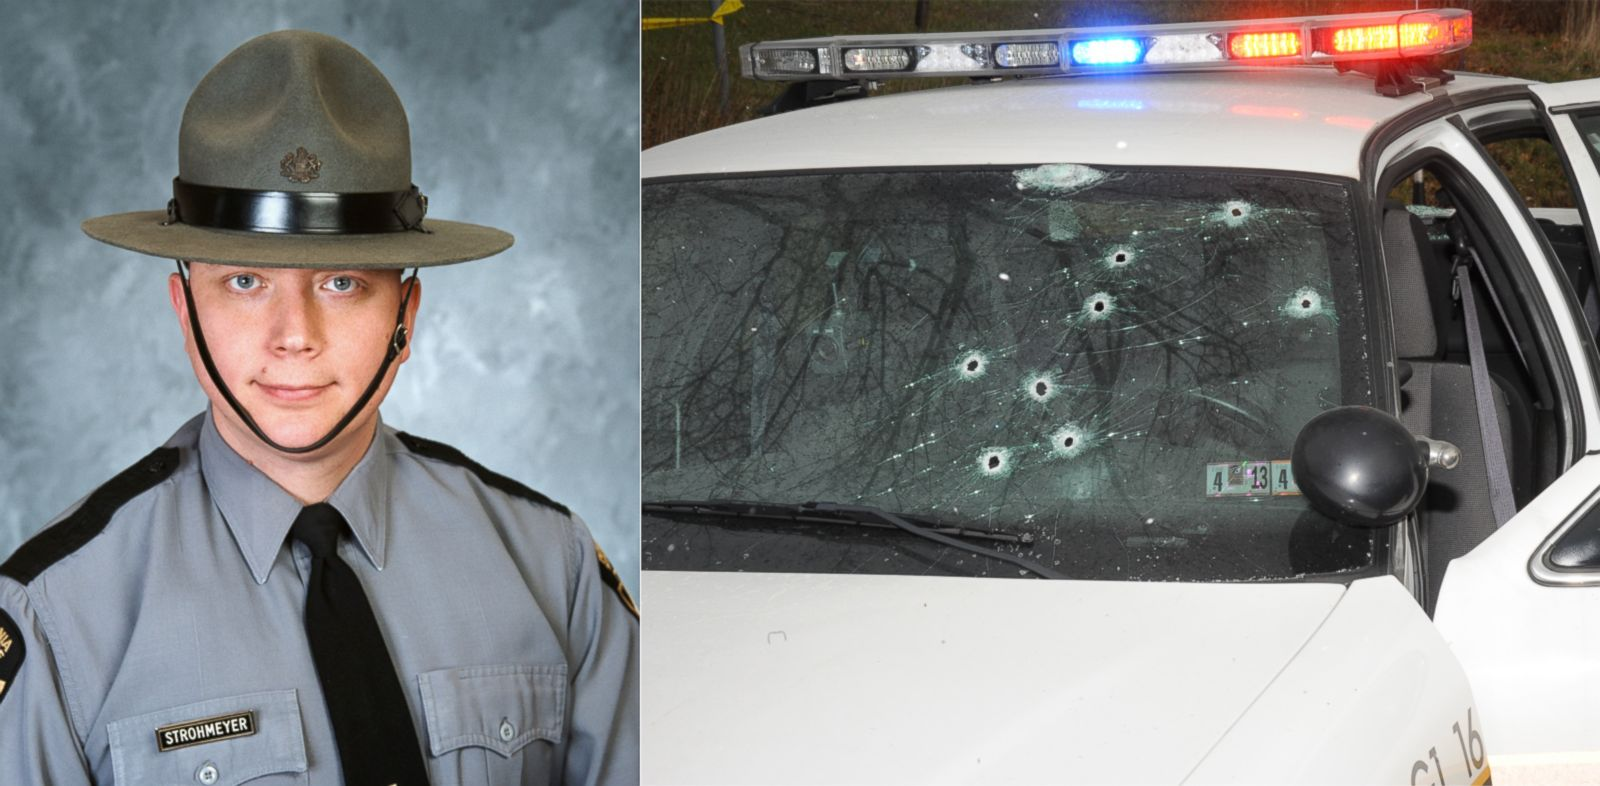 PHOTO: Pennsylvania State Trooper Timothy Strohmeyer was named Police Officer of the Year for his heroic actions in a gunbattle that left his car riddled with bullet holes.